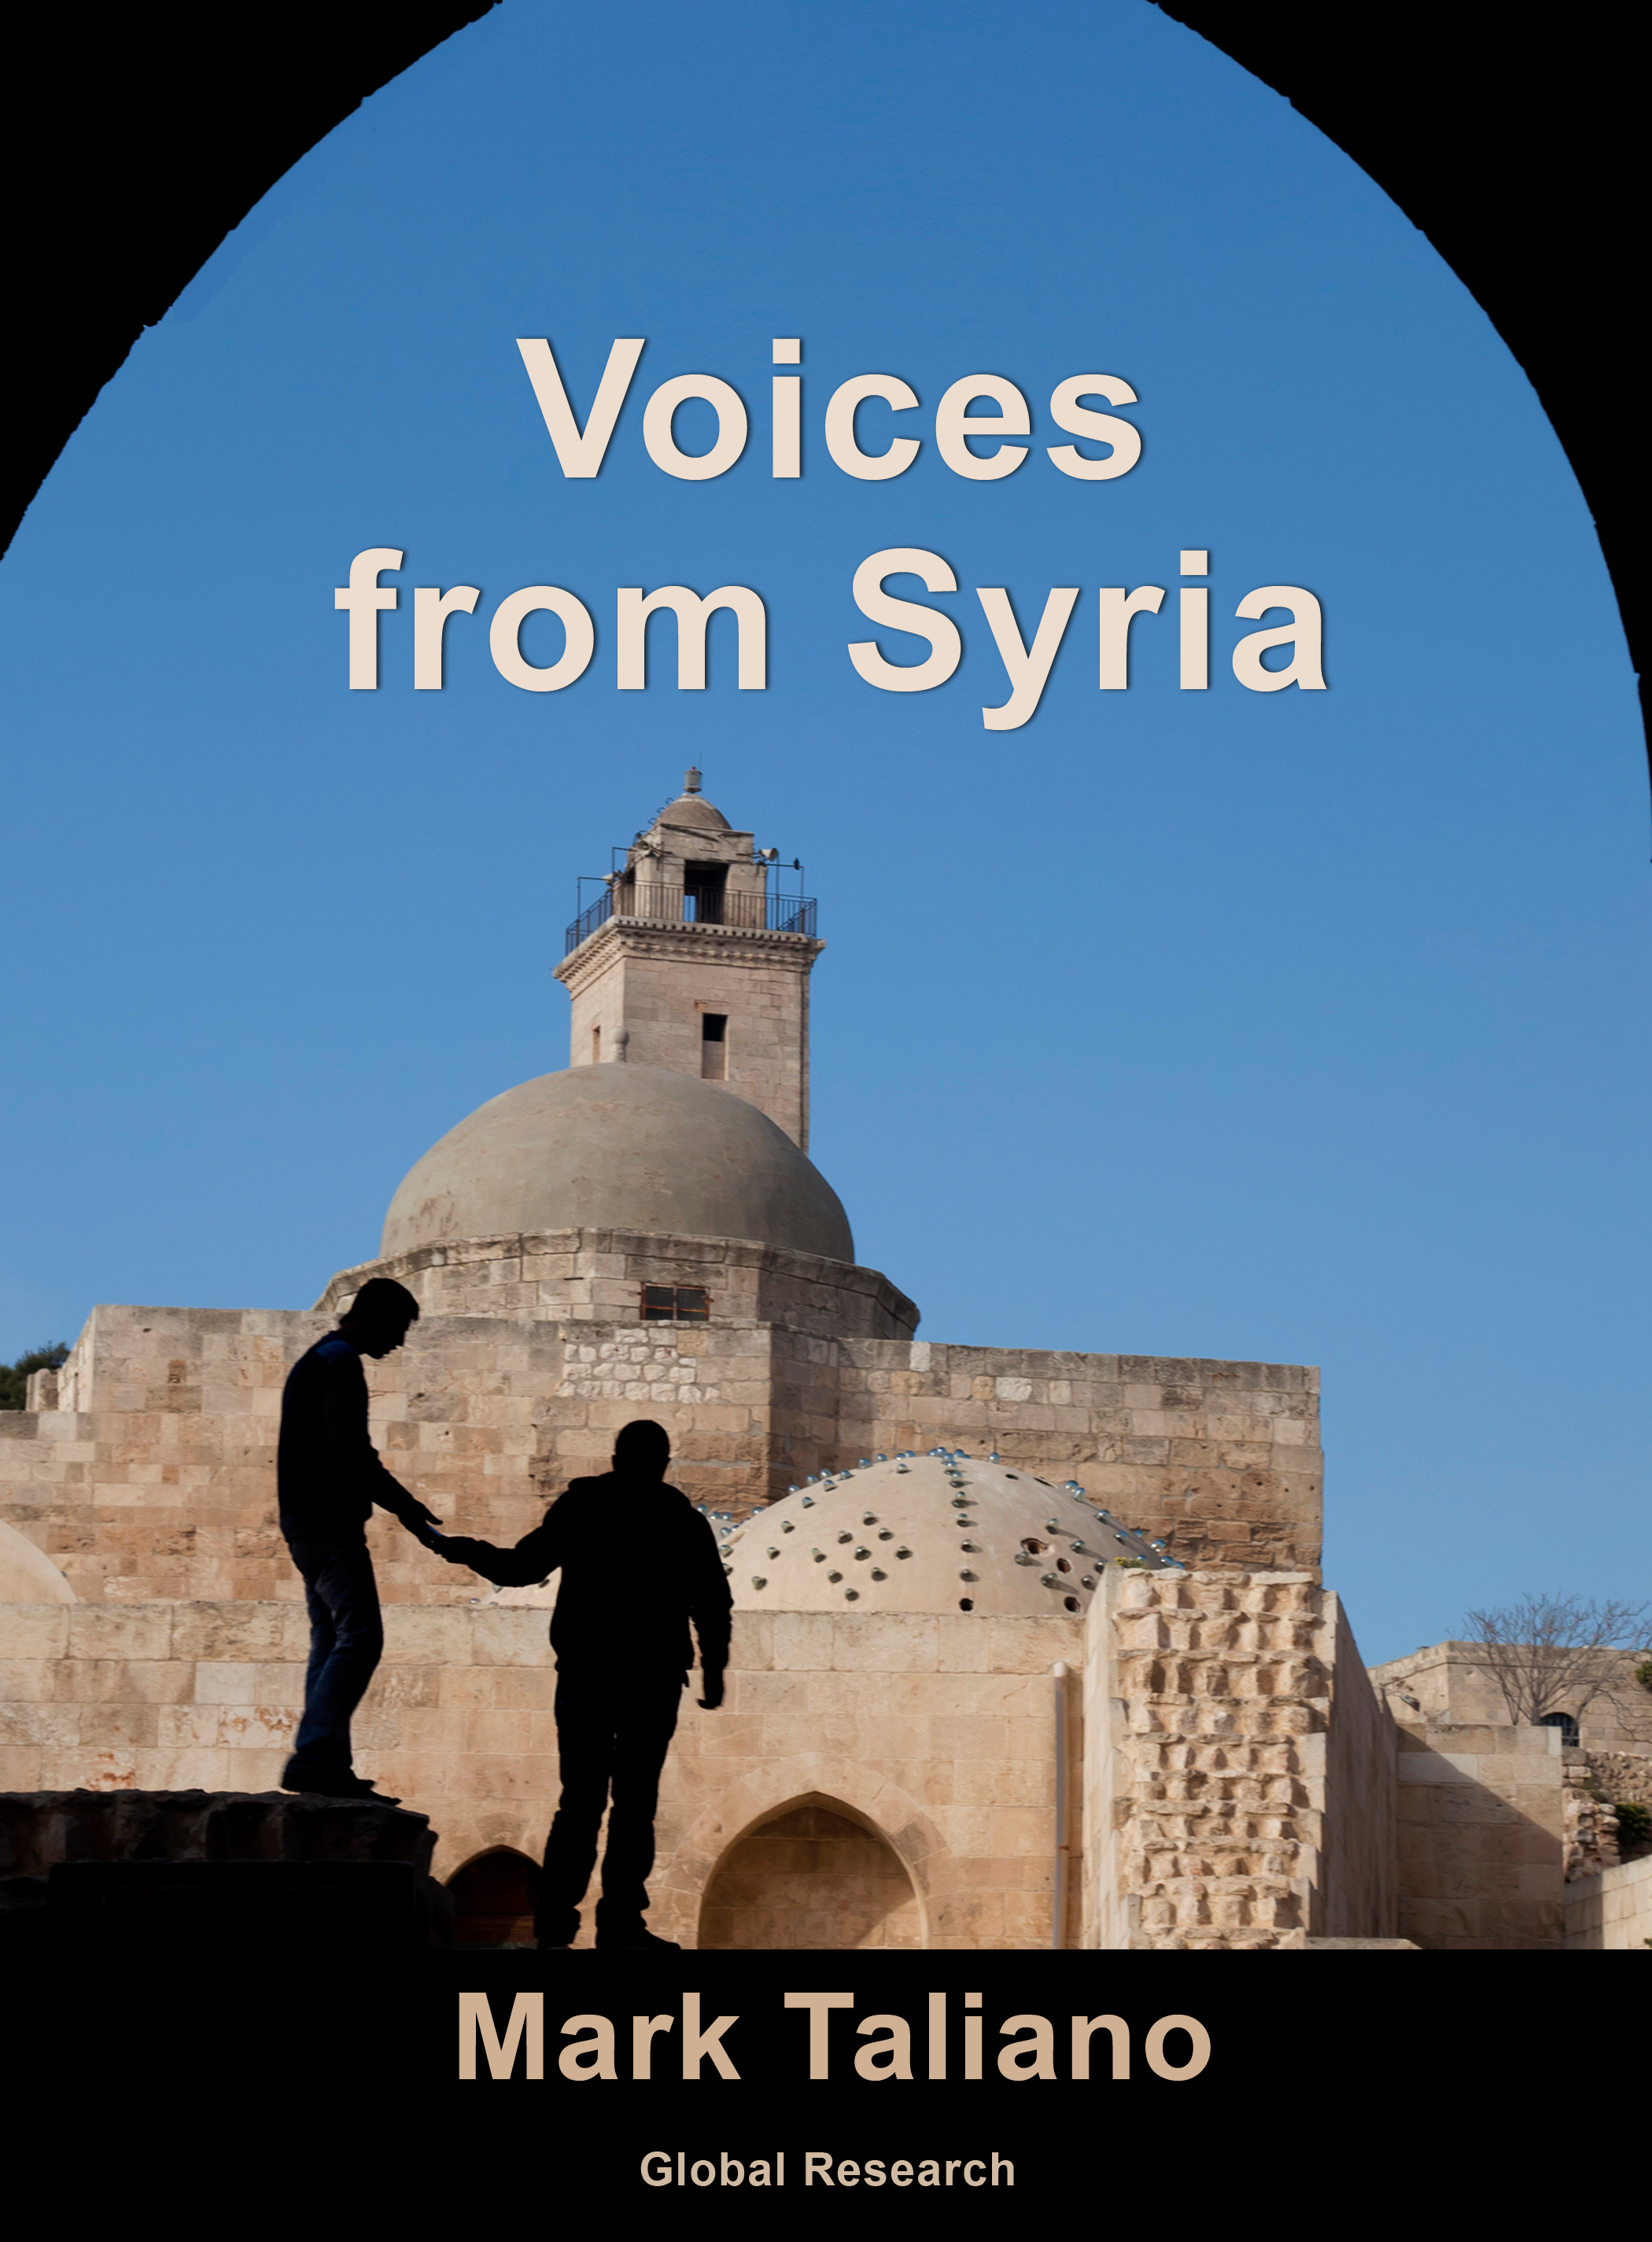 https://www.globalresearch.ca/voices-from-syria-new-e-book-by-mark-taliano-available-now/5569919